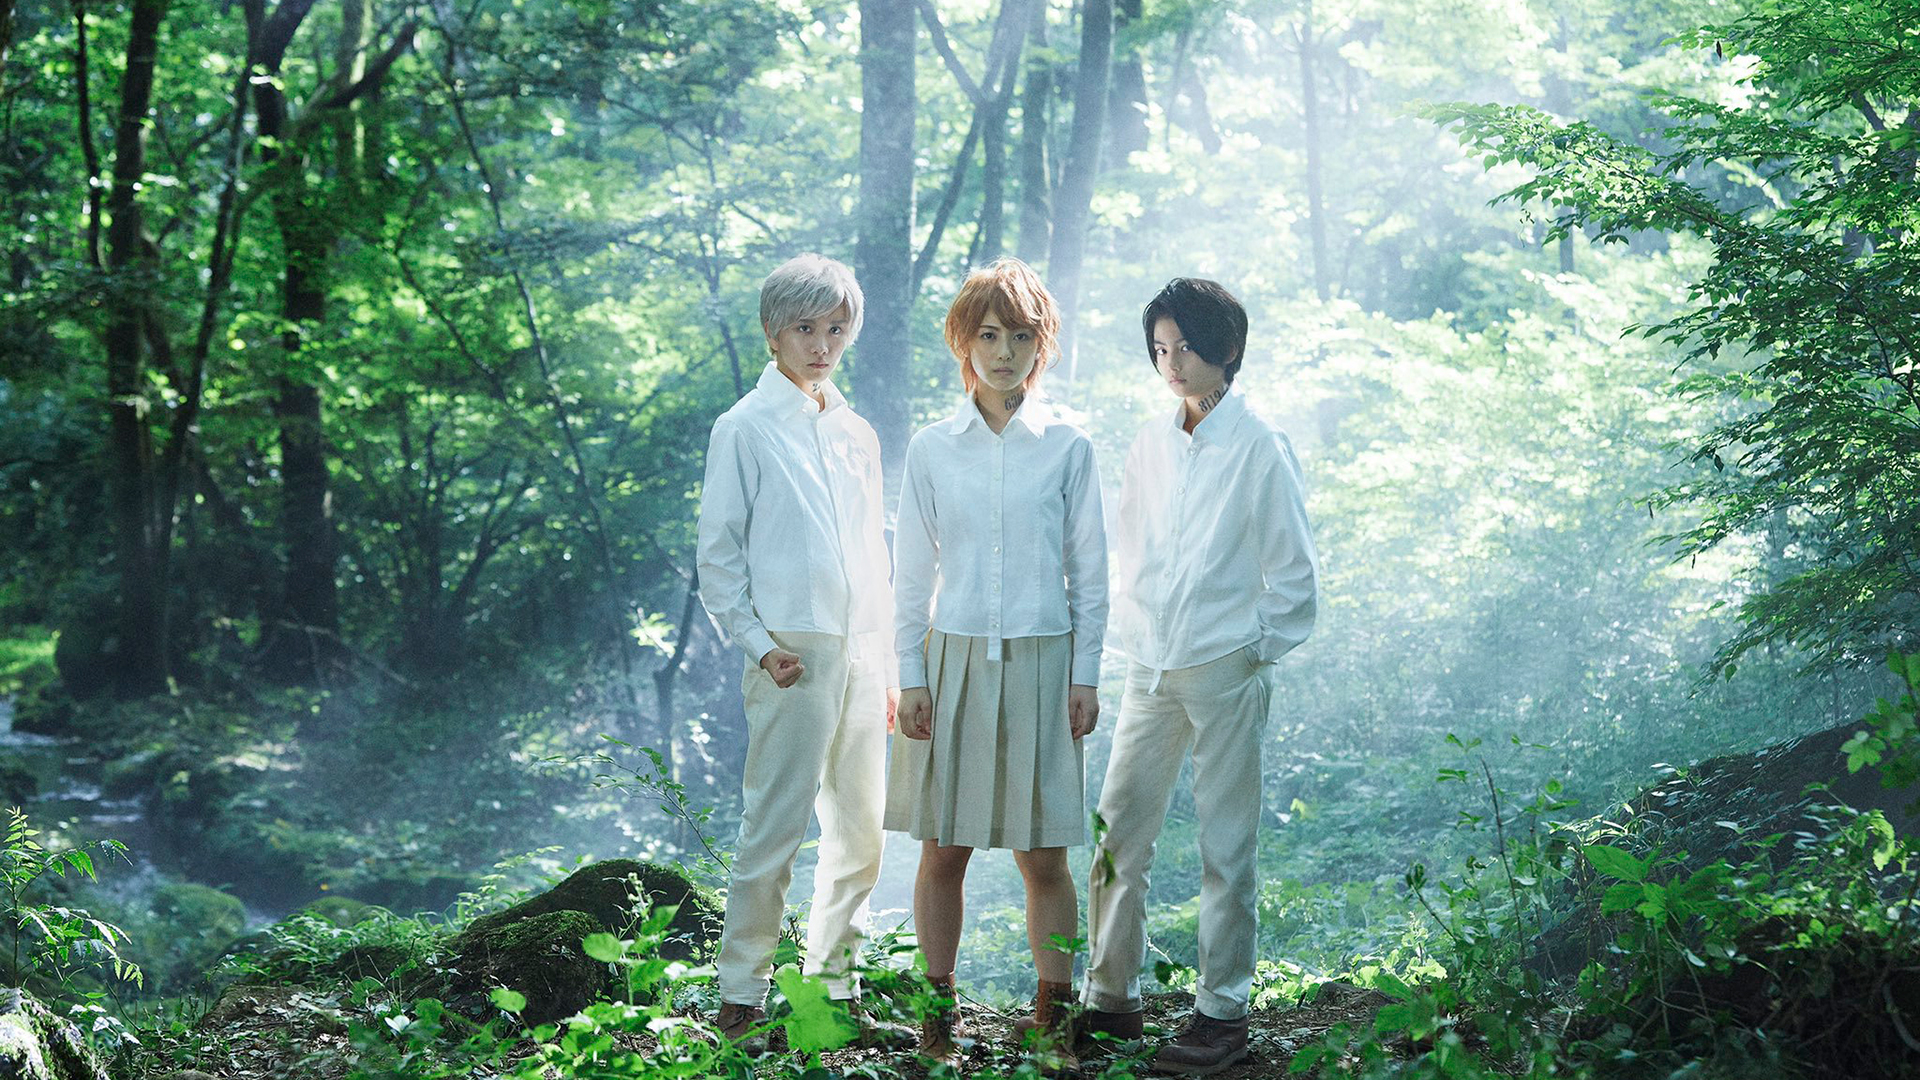 Minami Hamabe fala sobre a sua participação no filme live-action de The Promised Neverland